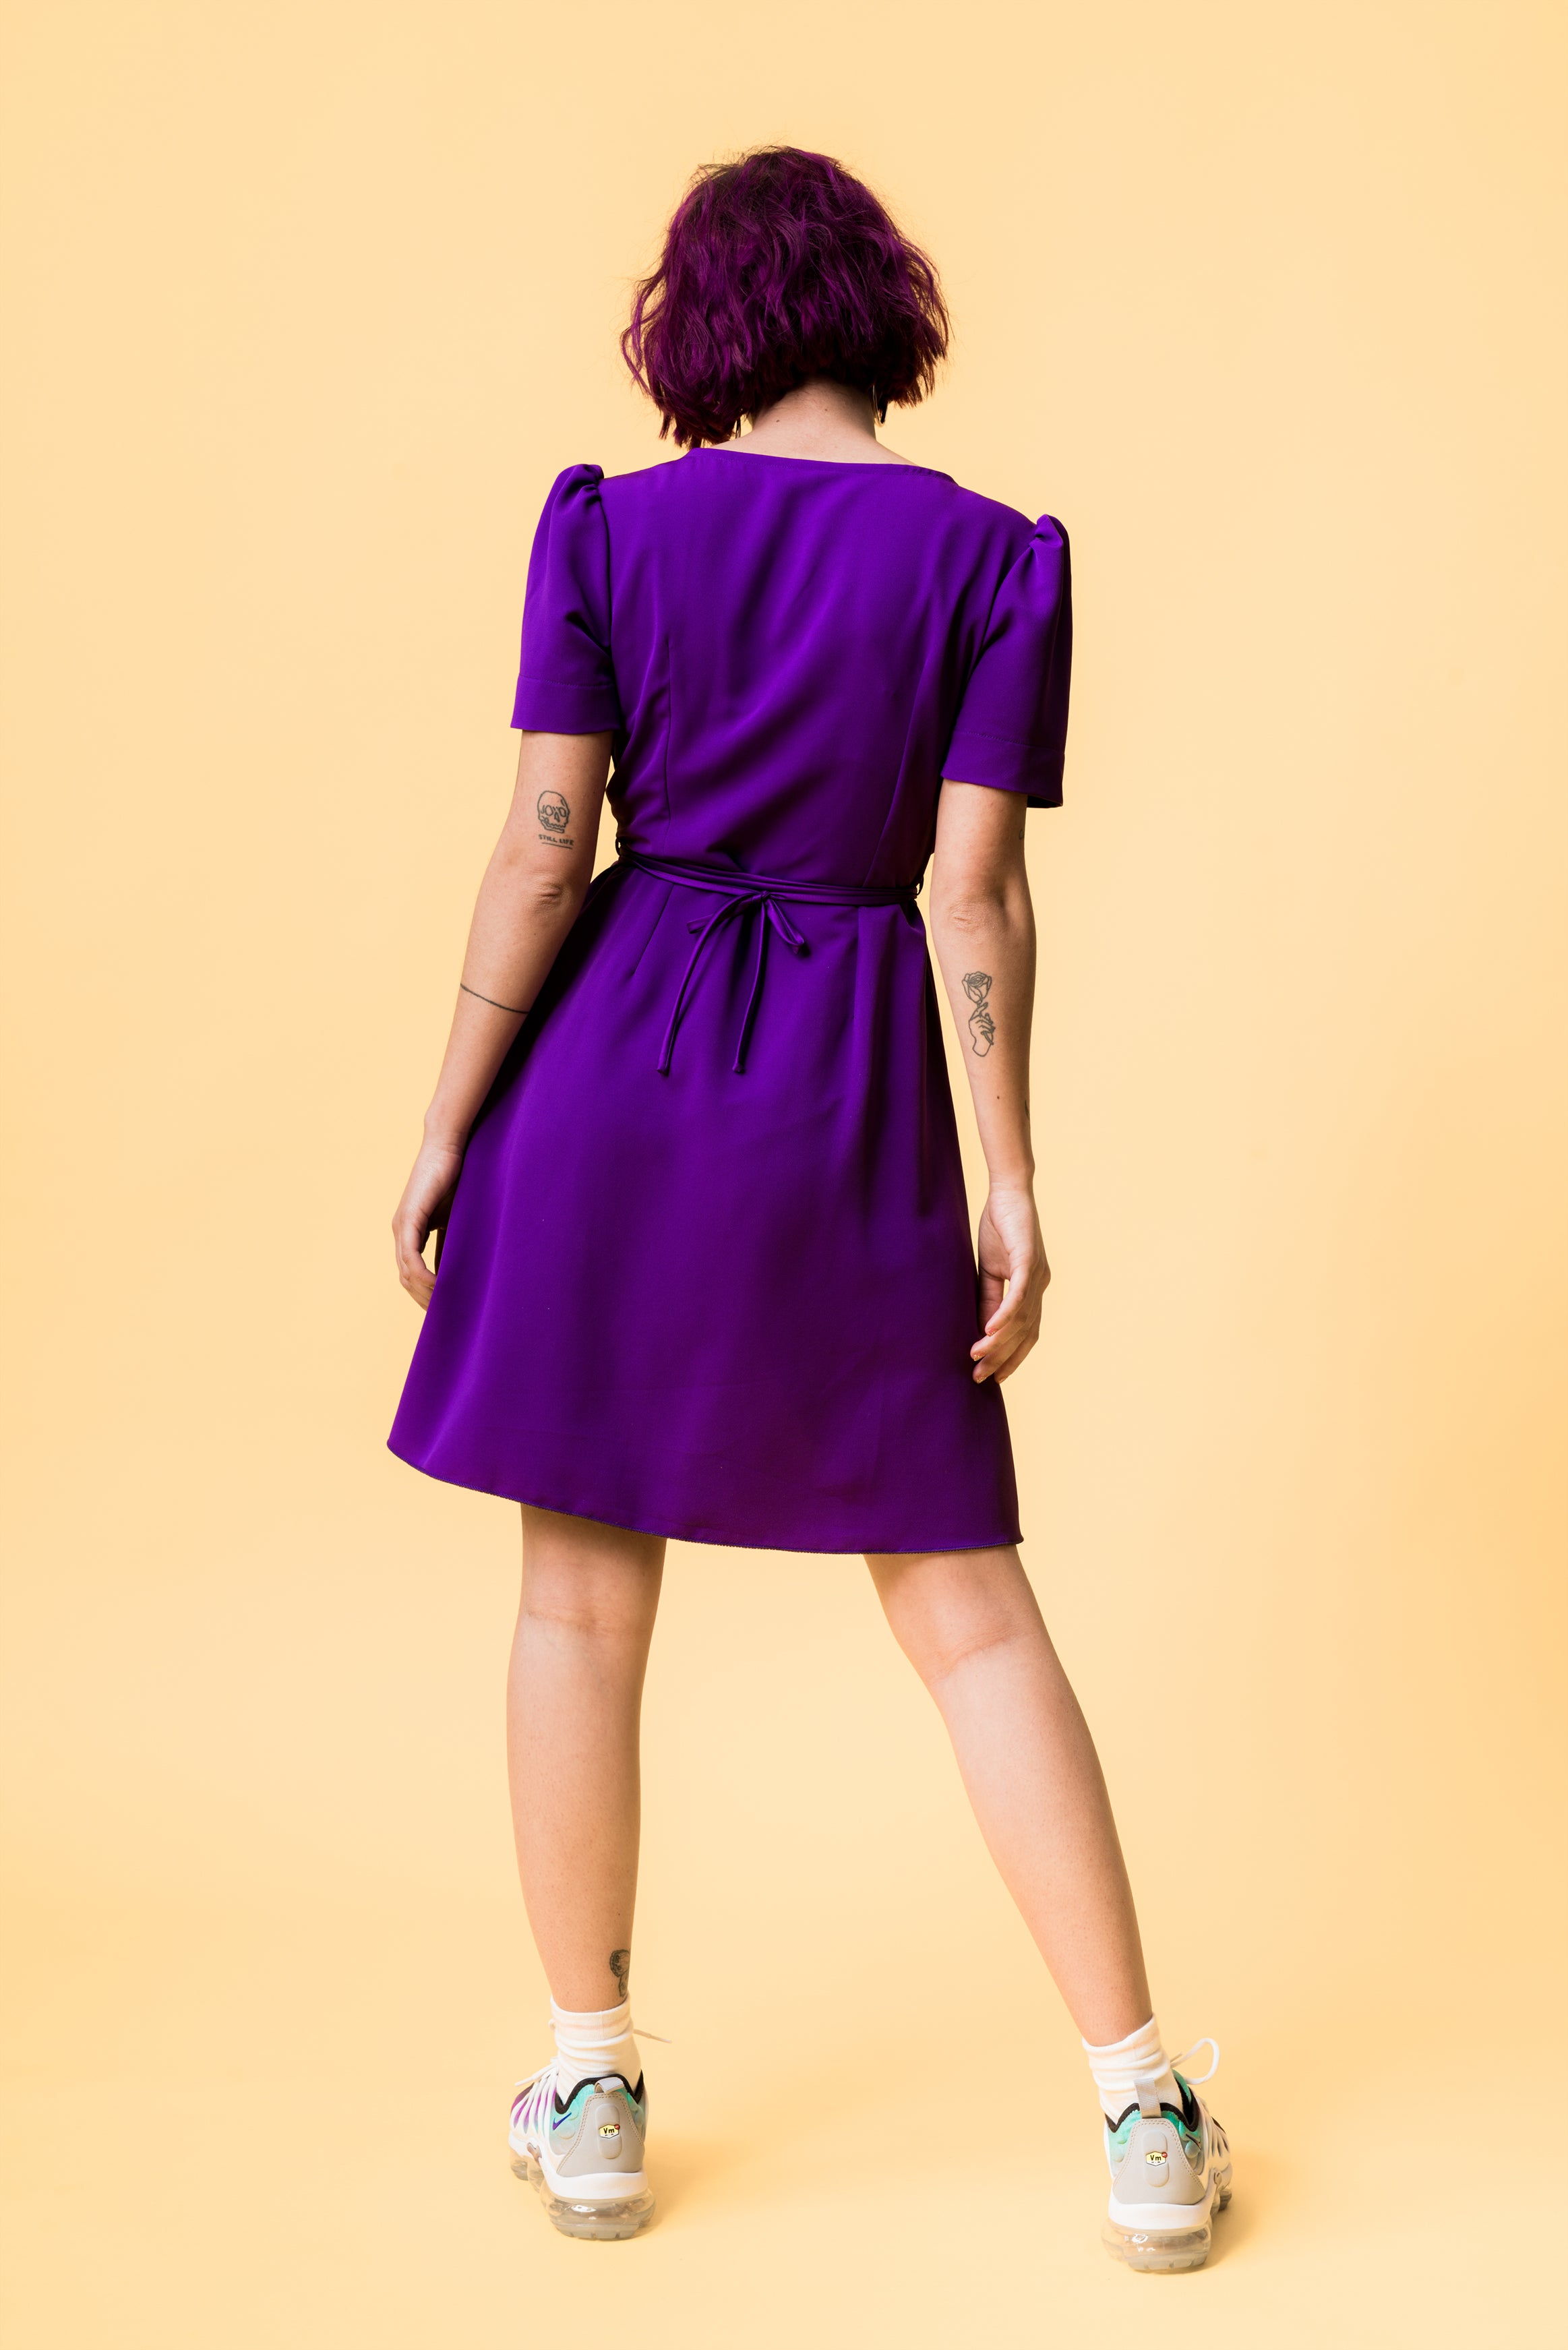 vivalafrins dress ultraviolet vestido